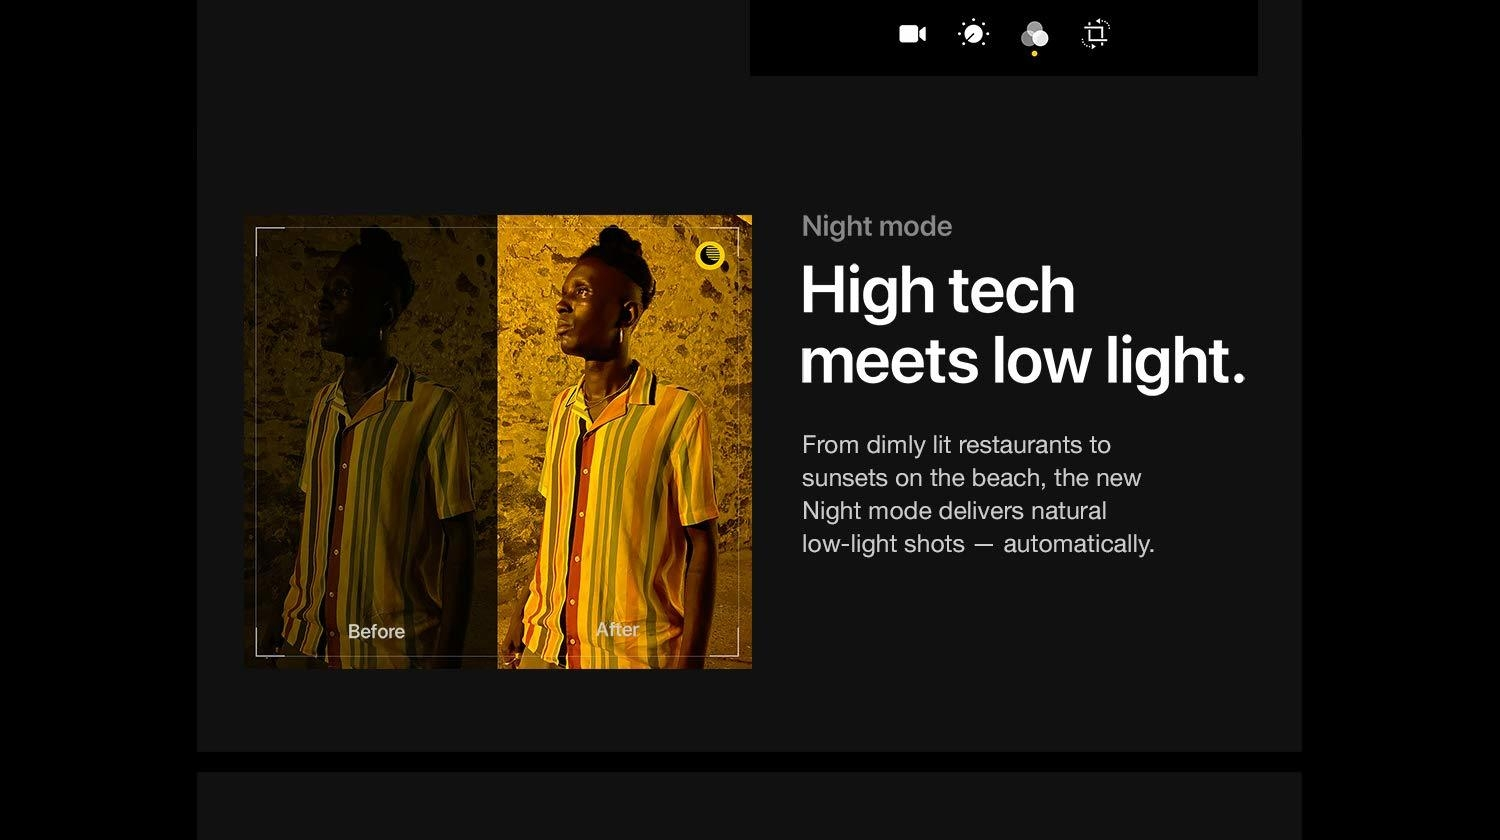 Night Mode.  High tech meets low light.  From dimly lit restaurants to sunsets on the beach, the new Night mode delivers natural low-light shots - automatically.